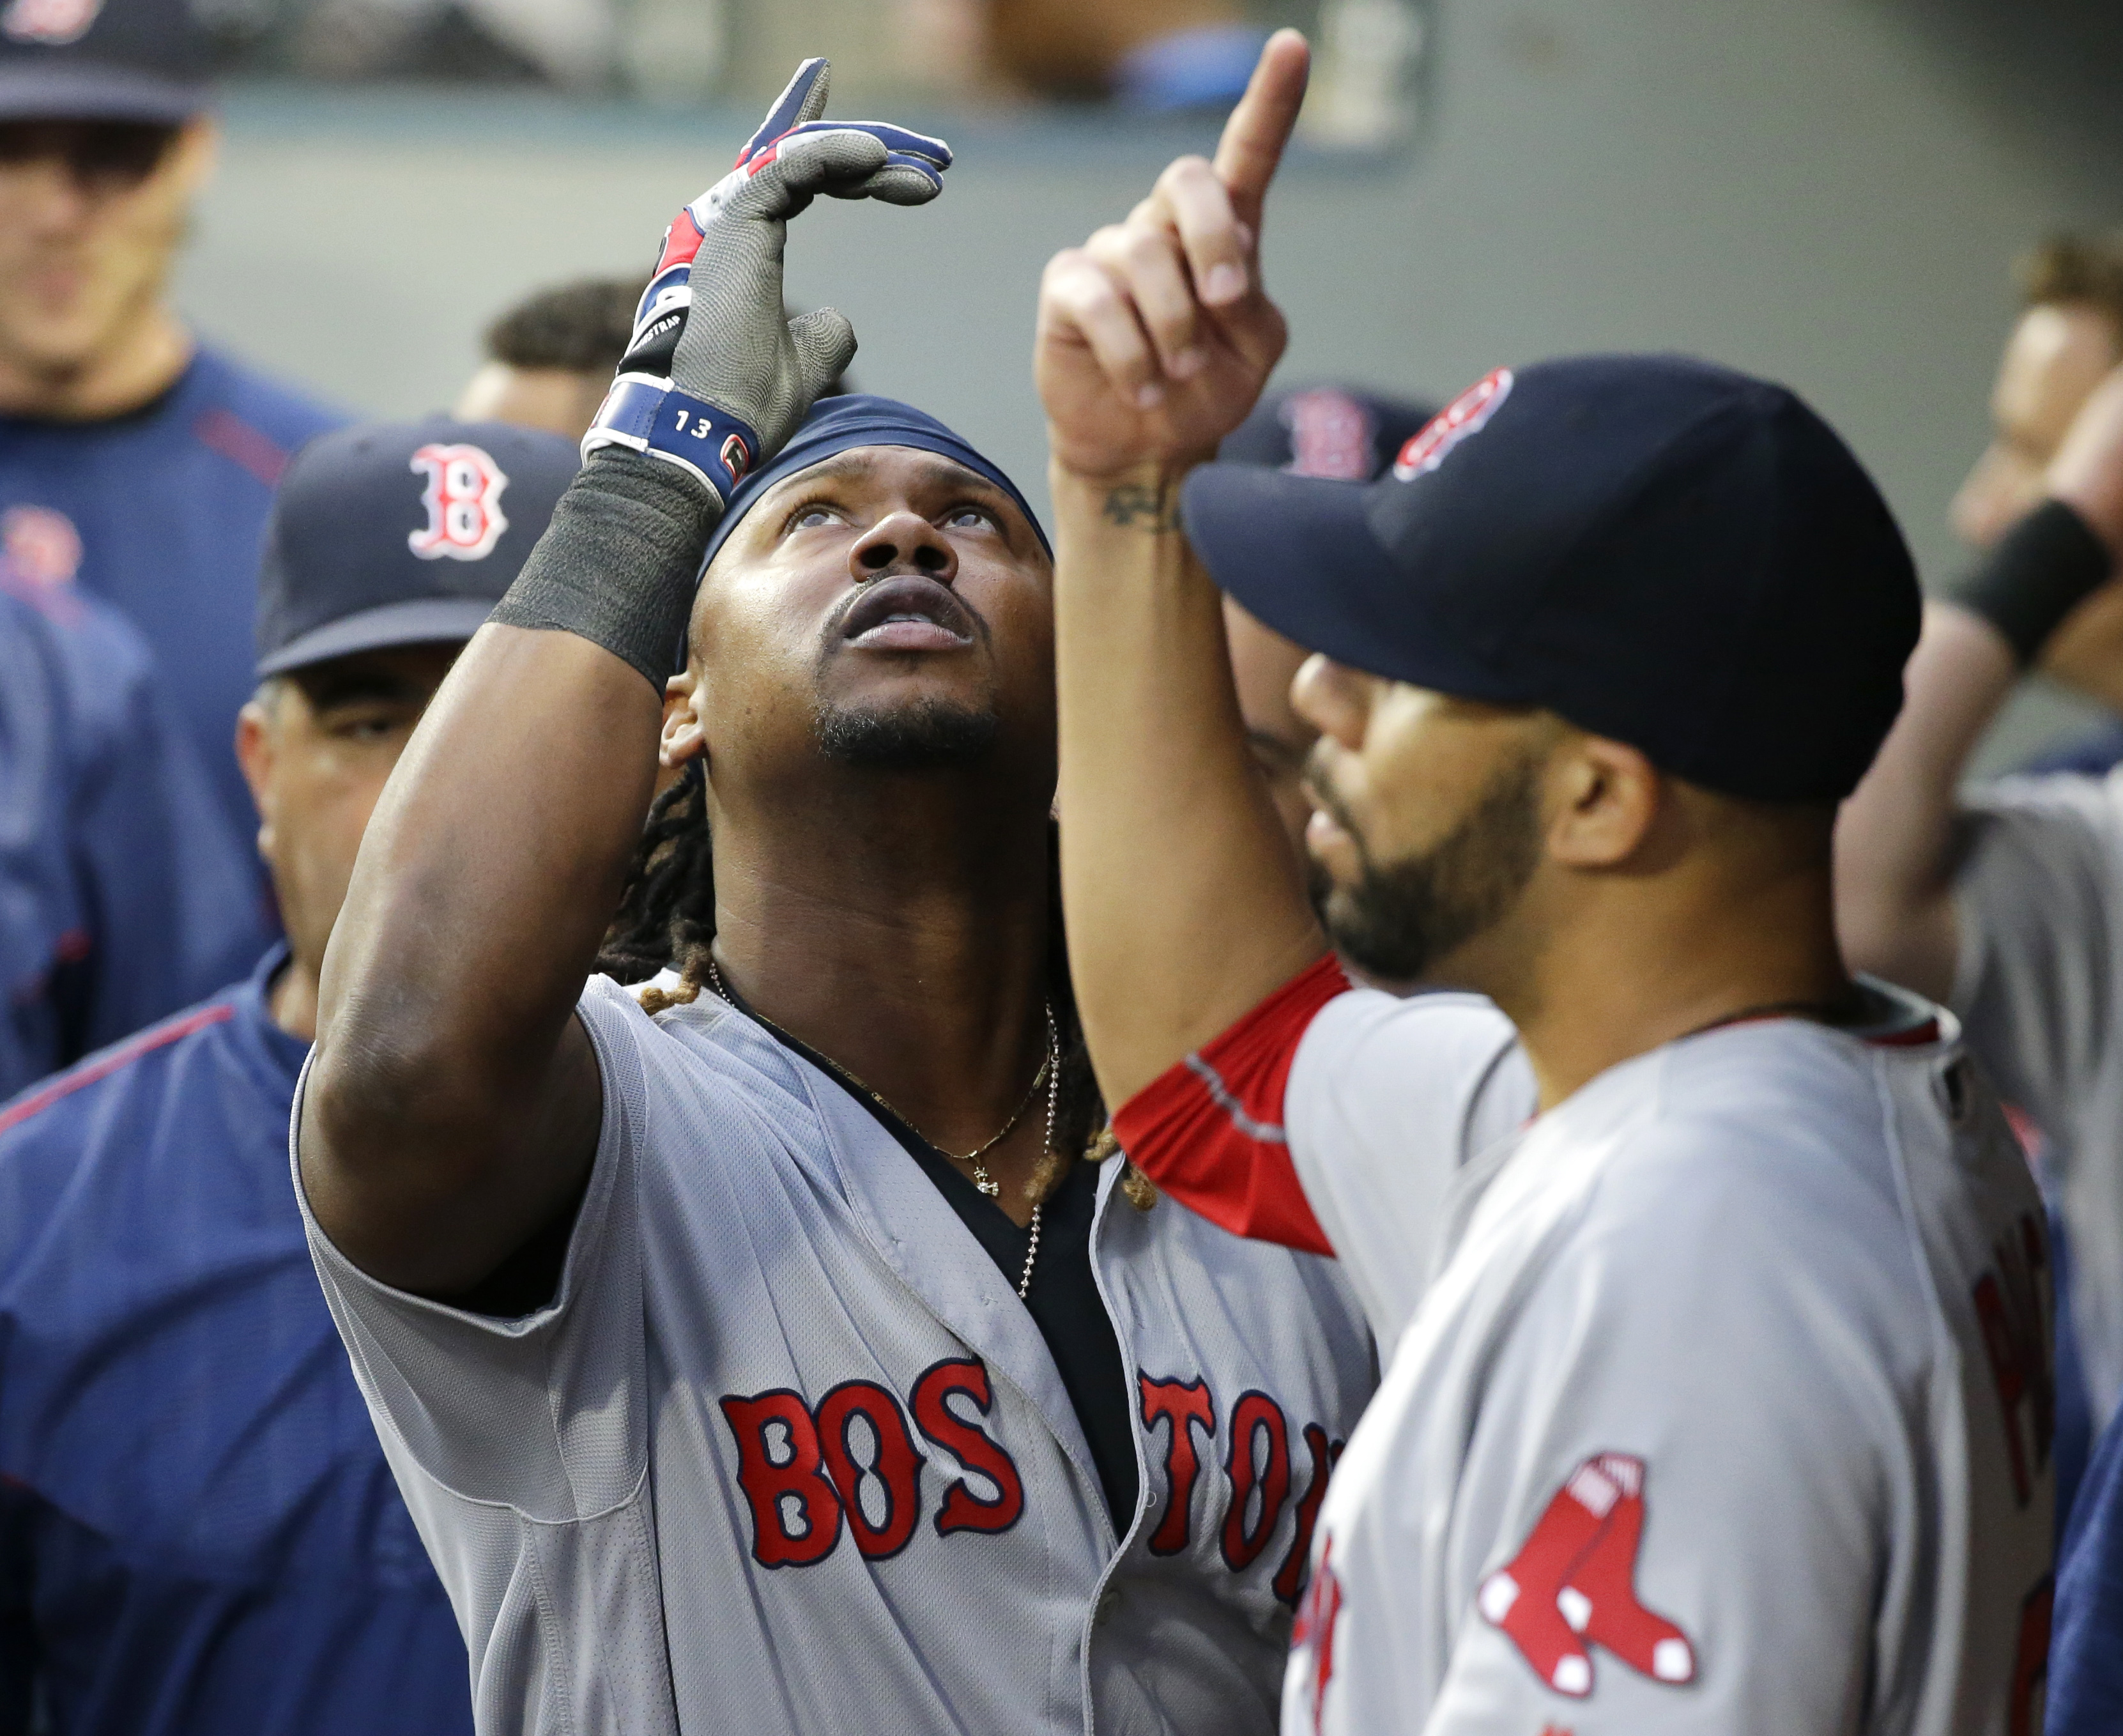 Boston Red Sox's Hanley Ramirez, left, celebrates with starting pitcher David Price, right, after Ramirez hit a solo home run during the fourth inning of a baseball game against the Seattle Mariners, Tuesday, Aug. 2, 2016, in Seattle. (AP Photo/Ted S. War